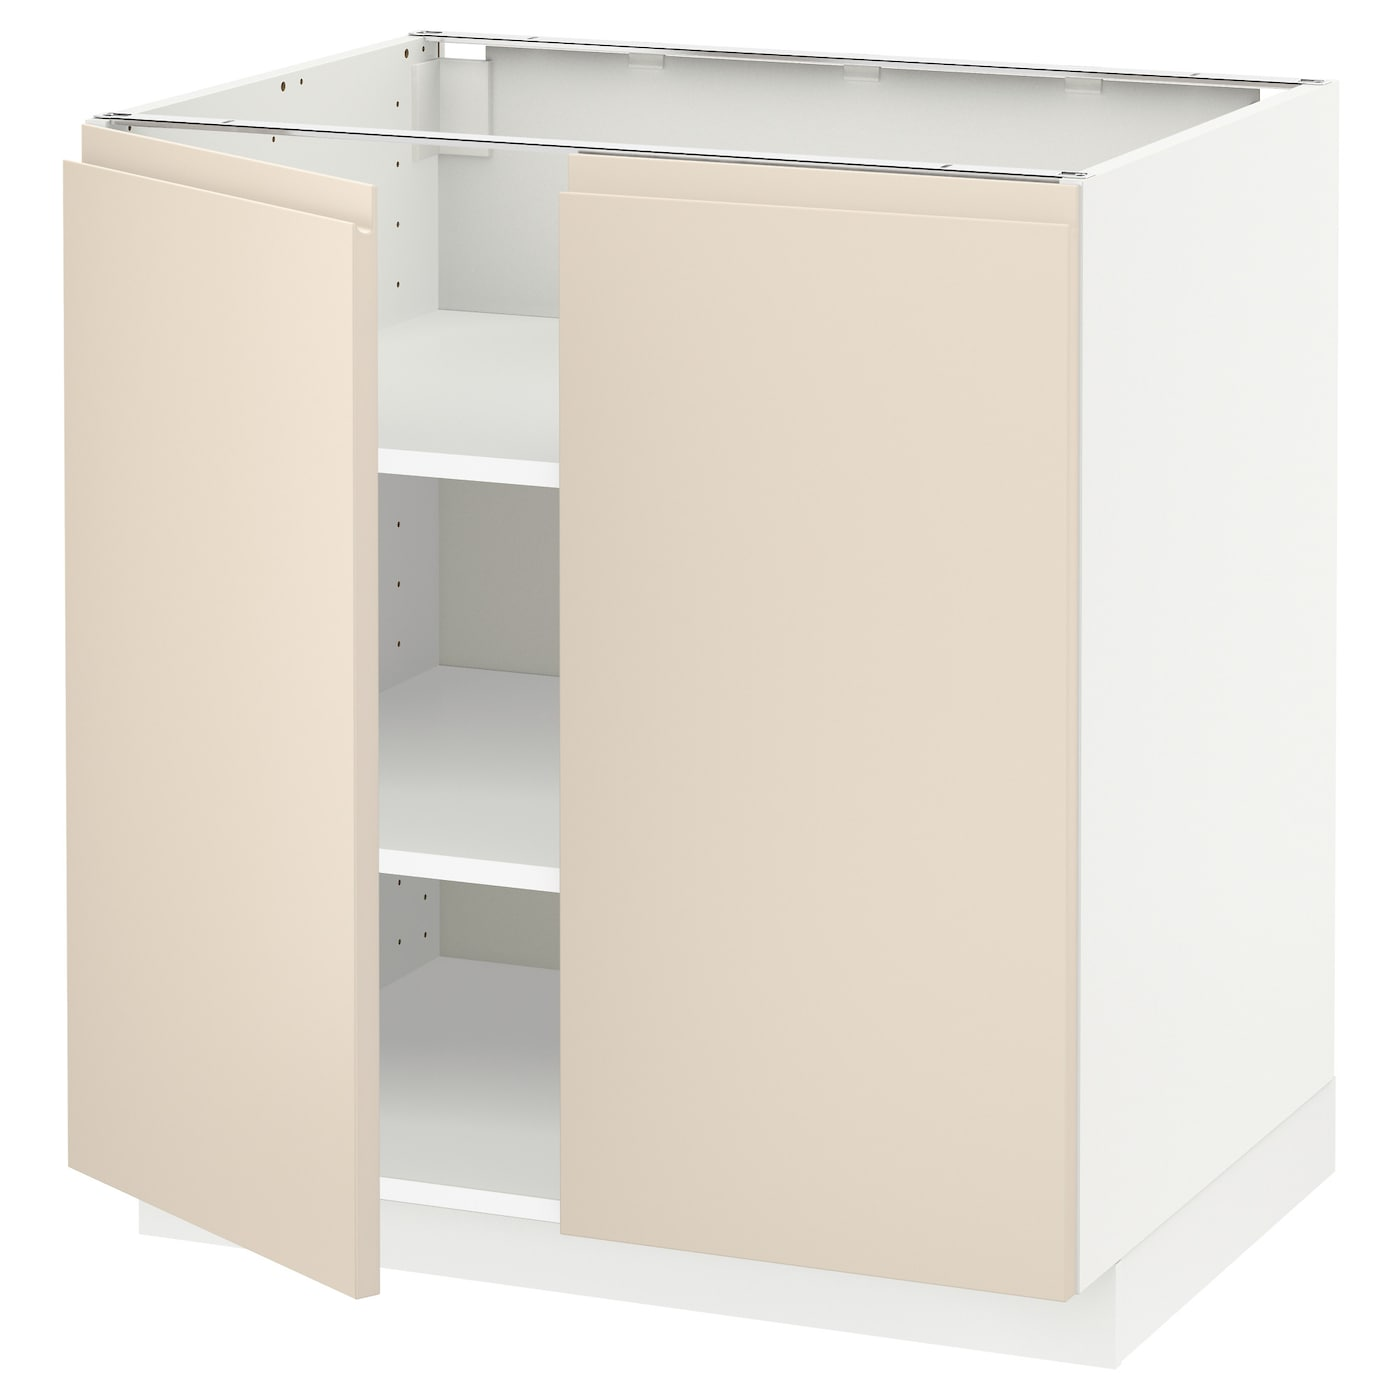 ikea bathroom cabinet doors metod base cabinet with shelves 2 doors white voxtorp 17521